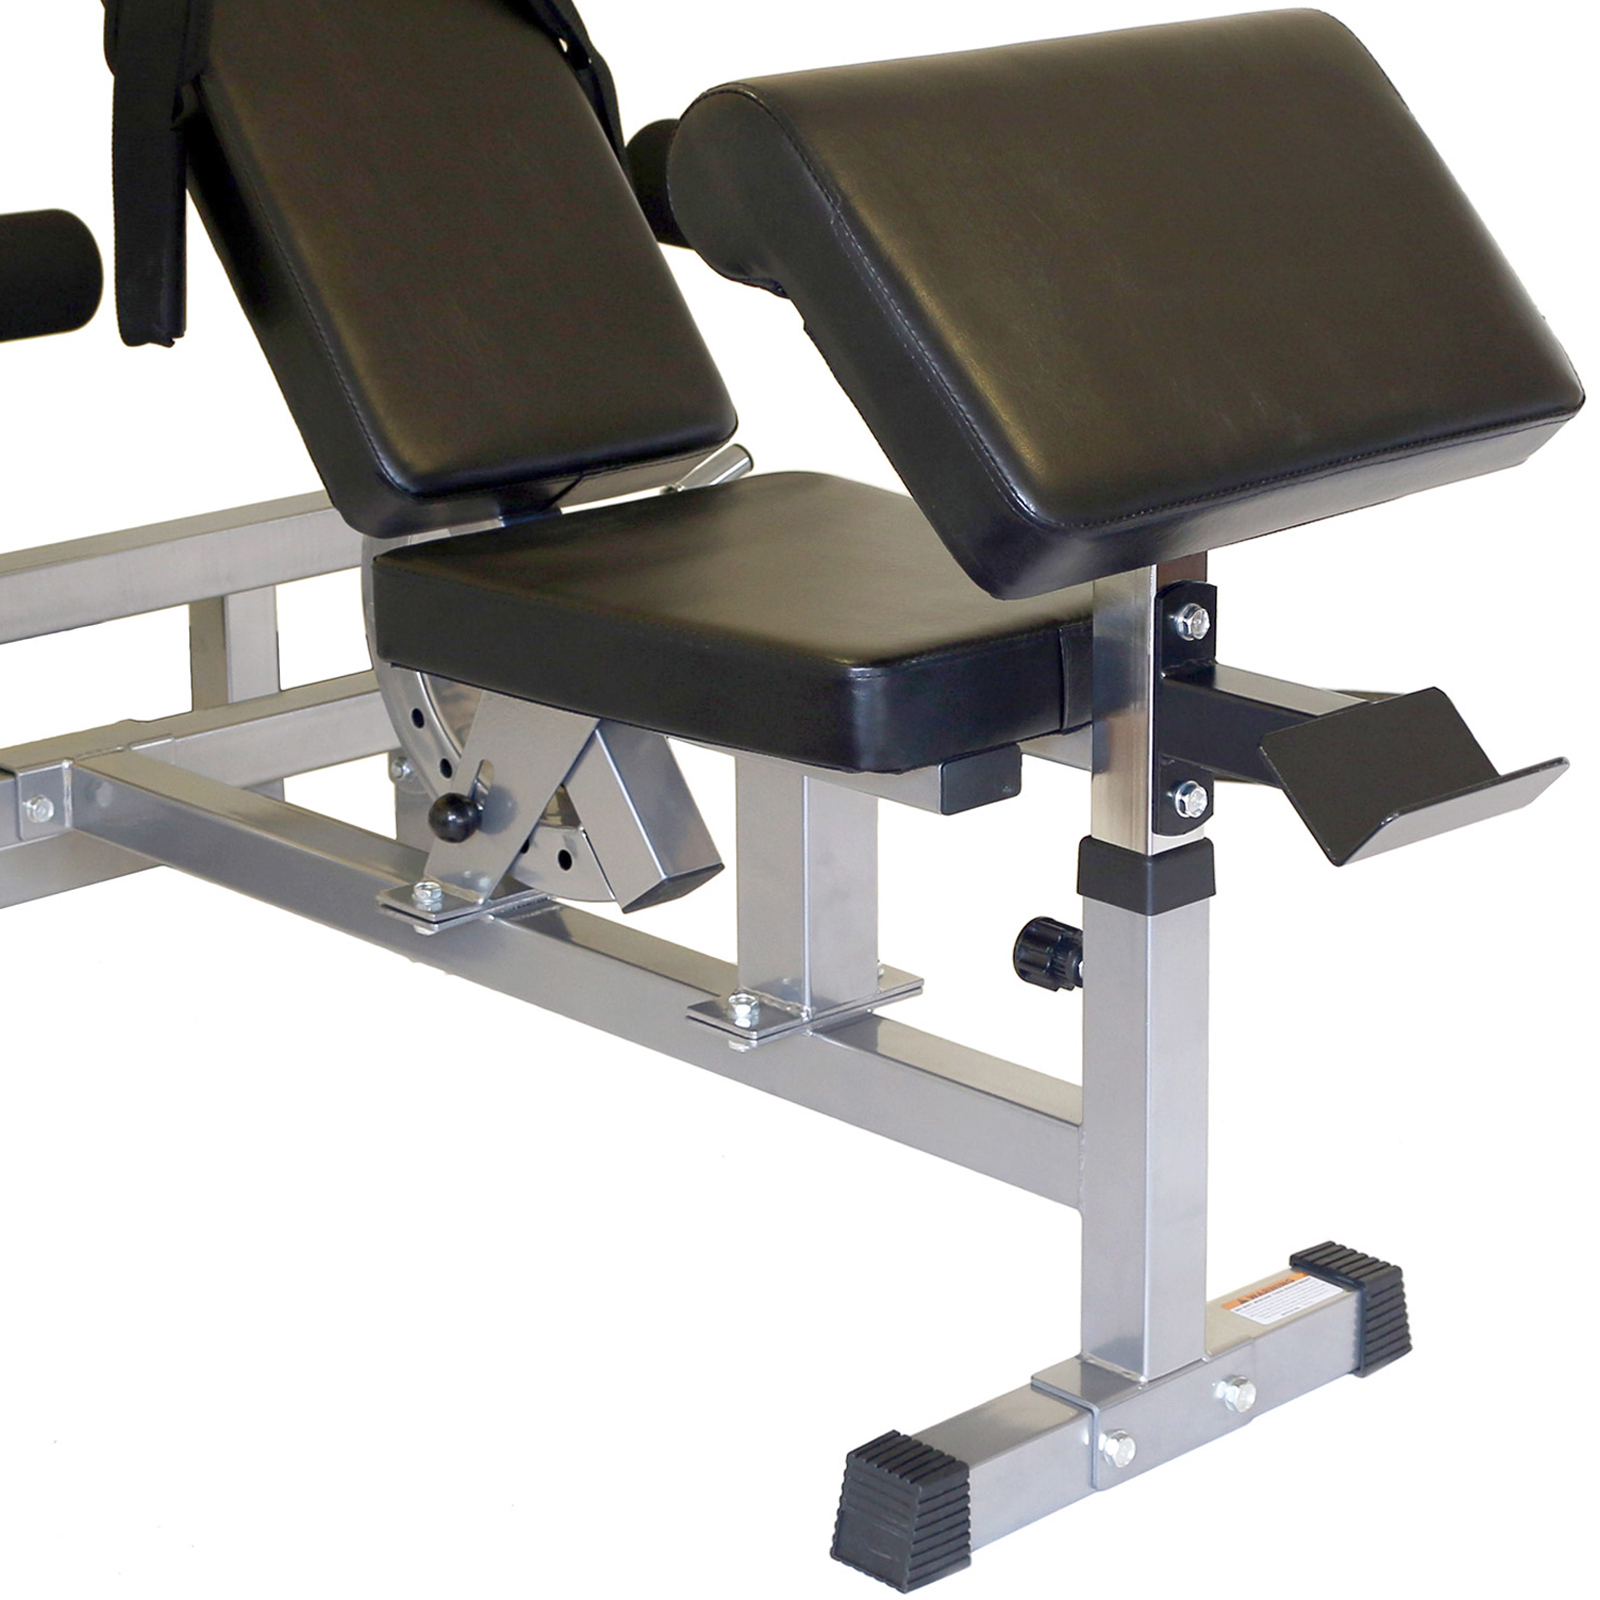 Hoist Preacher Bench: MIRAFIT HD Adjustable Weight Bench Home Multi Gym With Dip